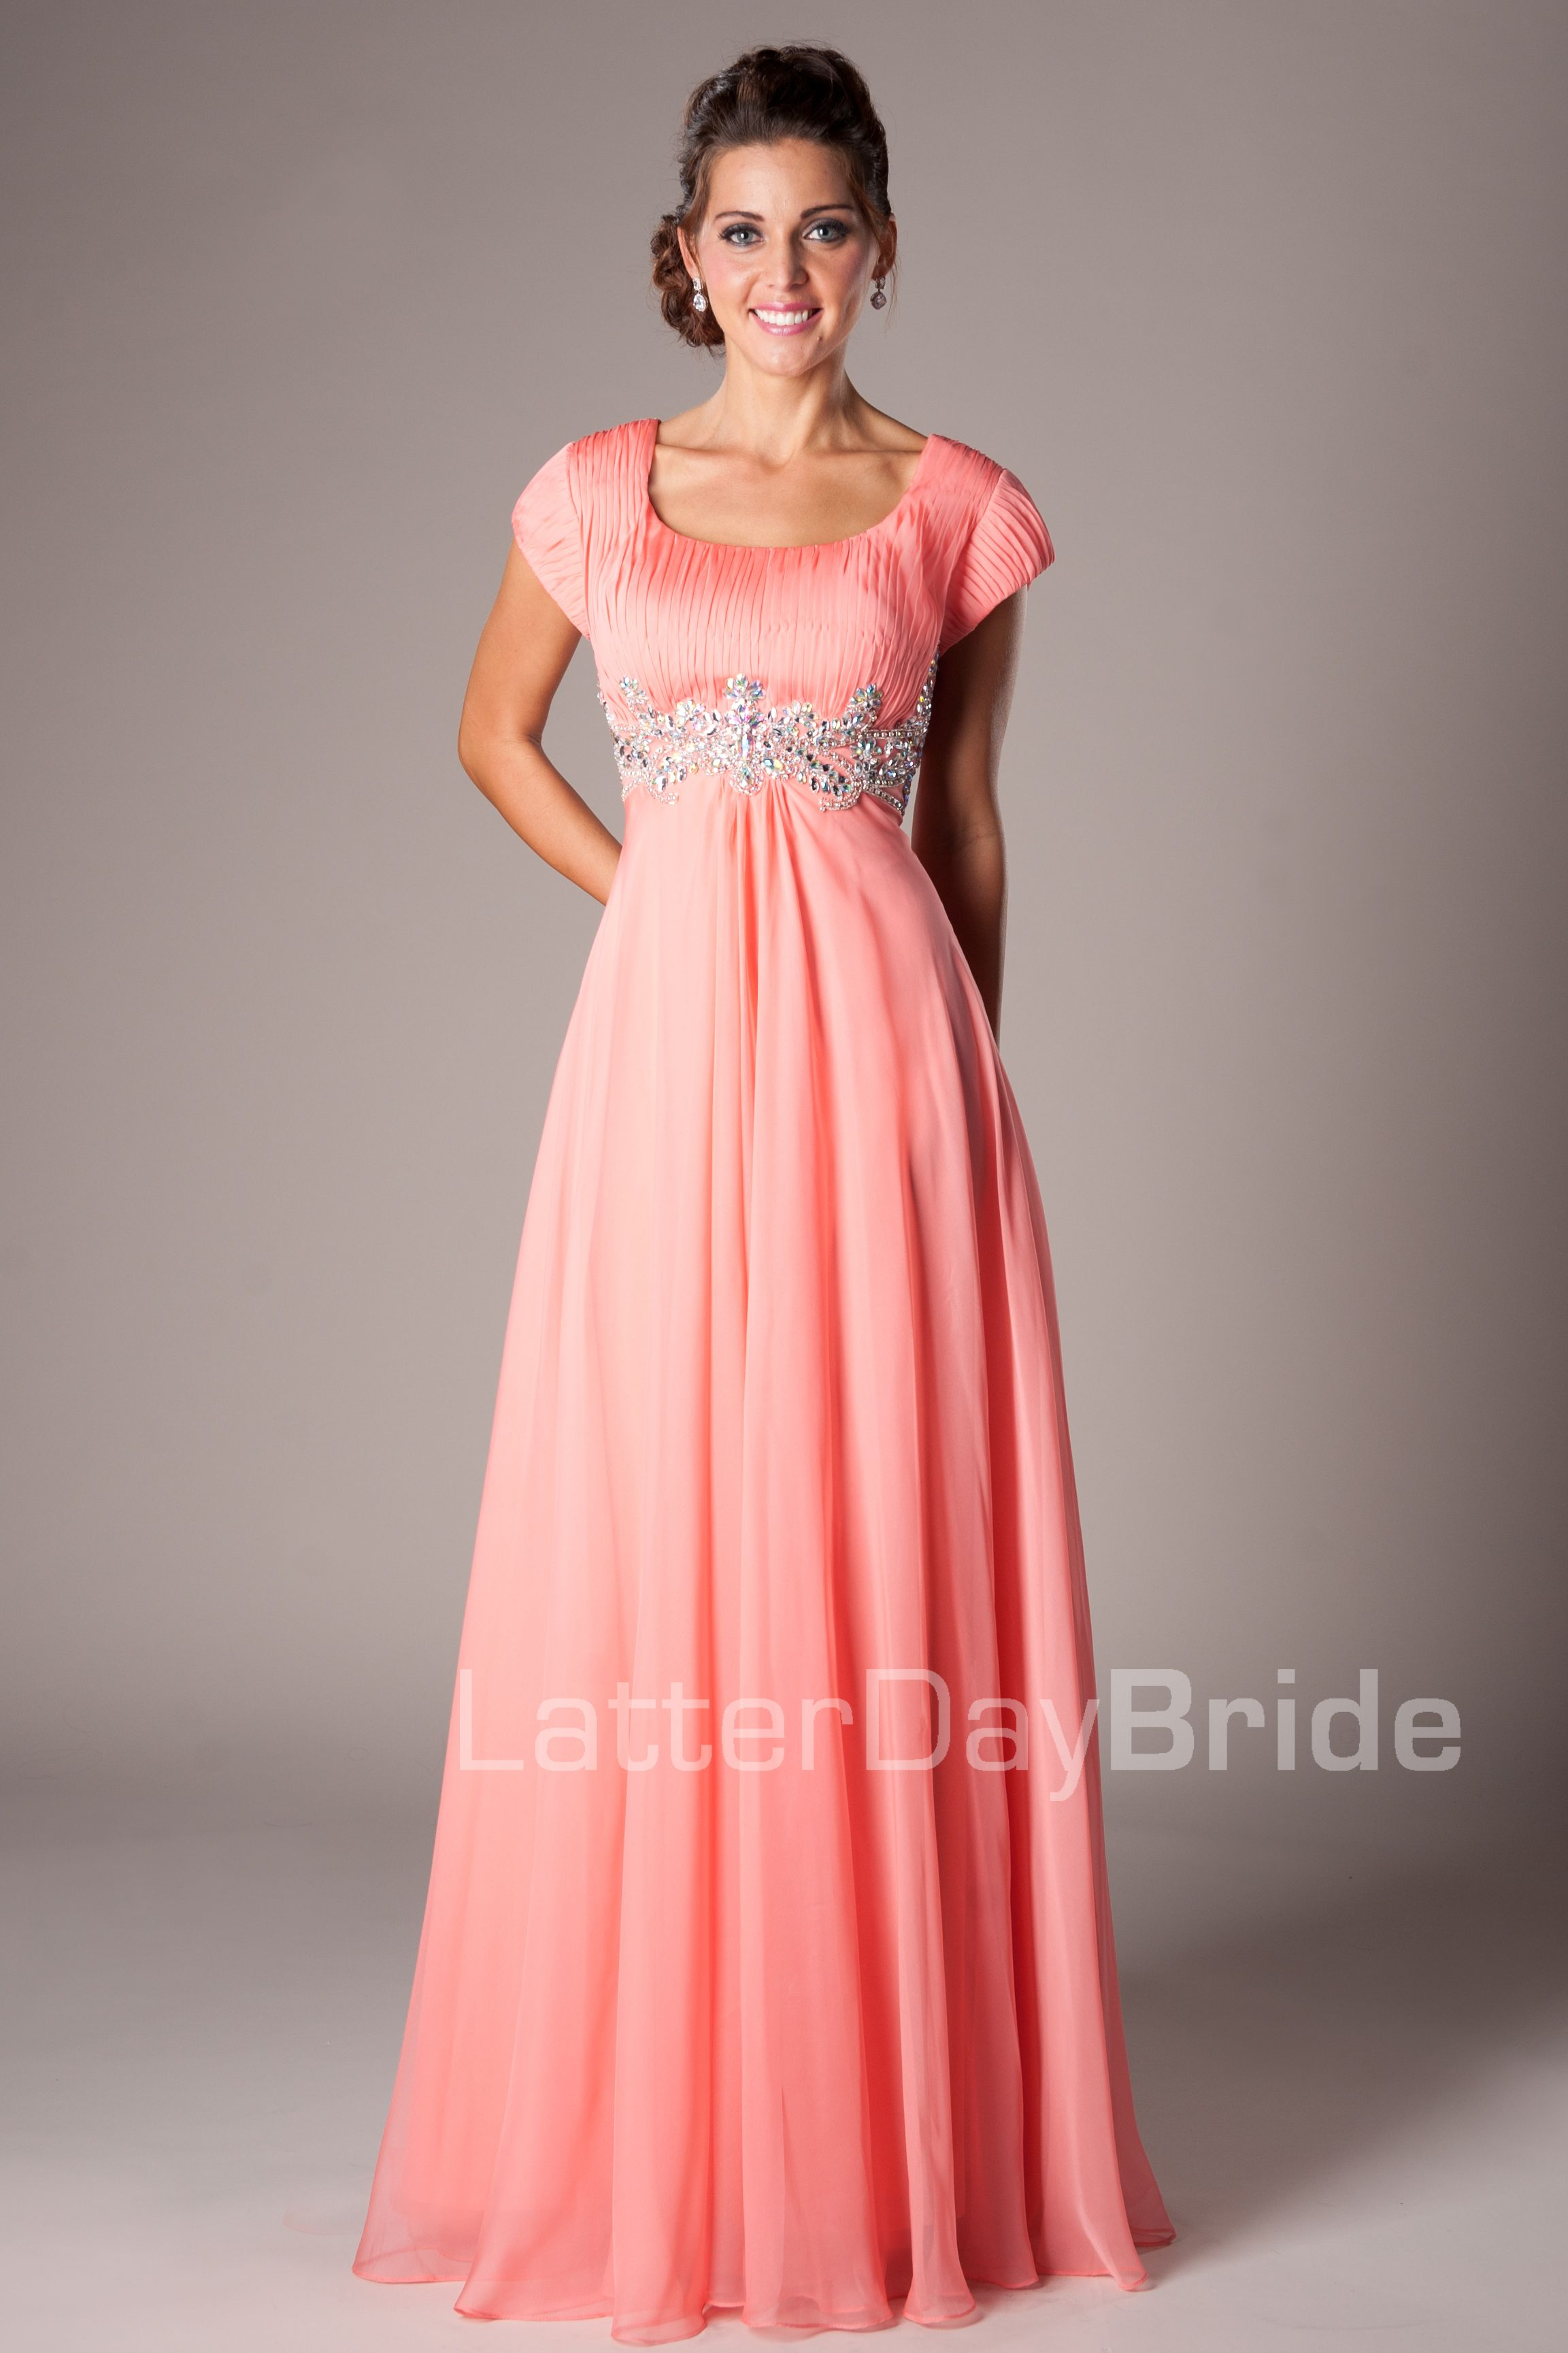 Modest Prom Dresses Prom Homecoming Formal Dance Modest - Melanie ...